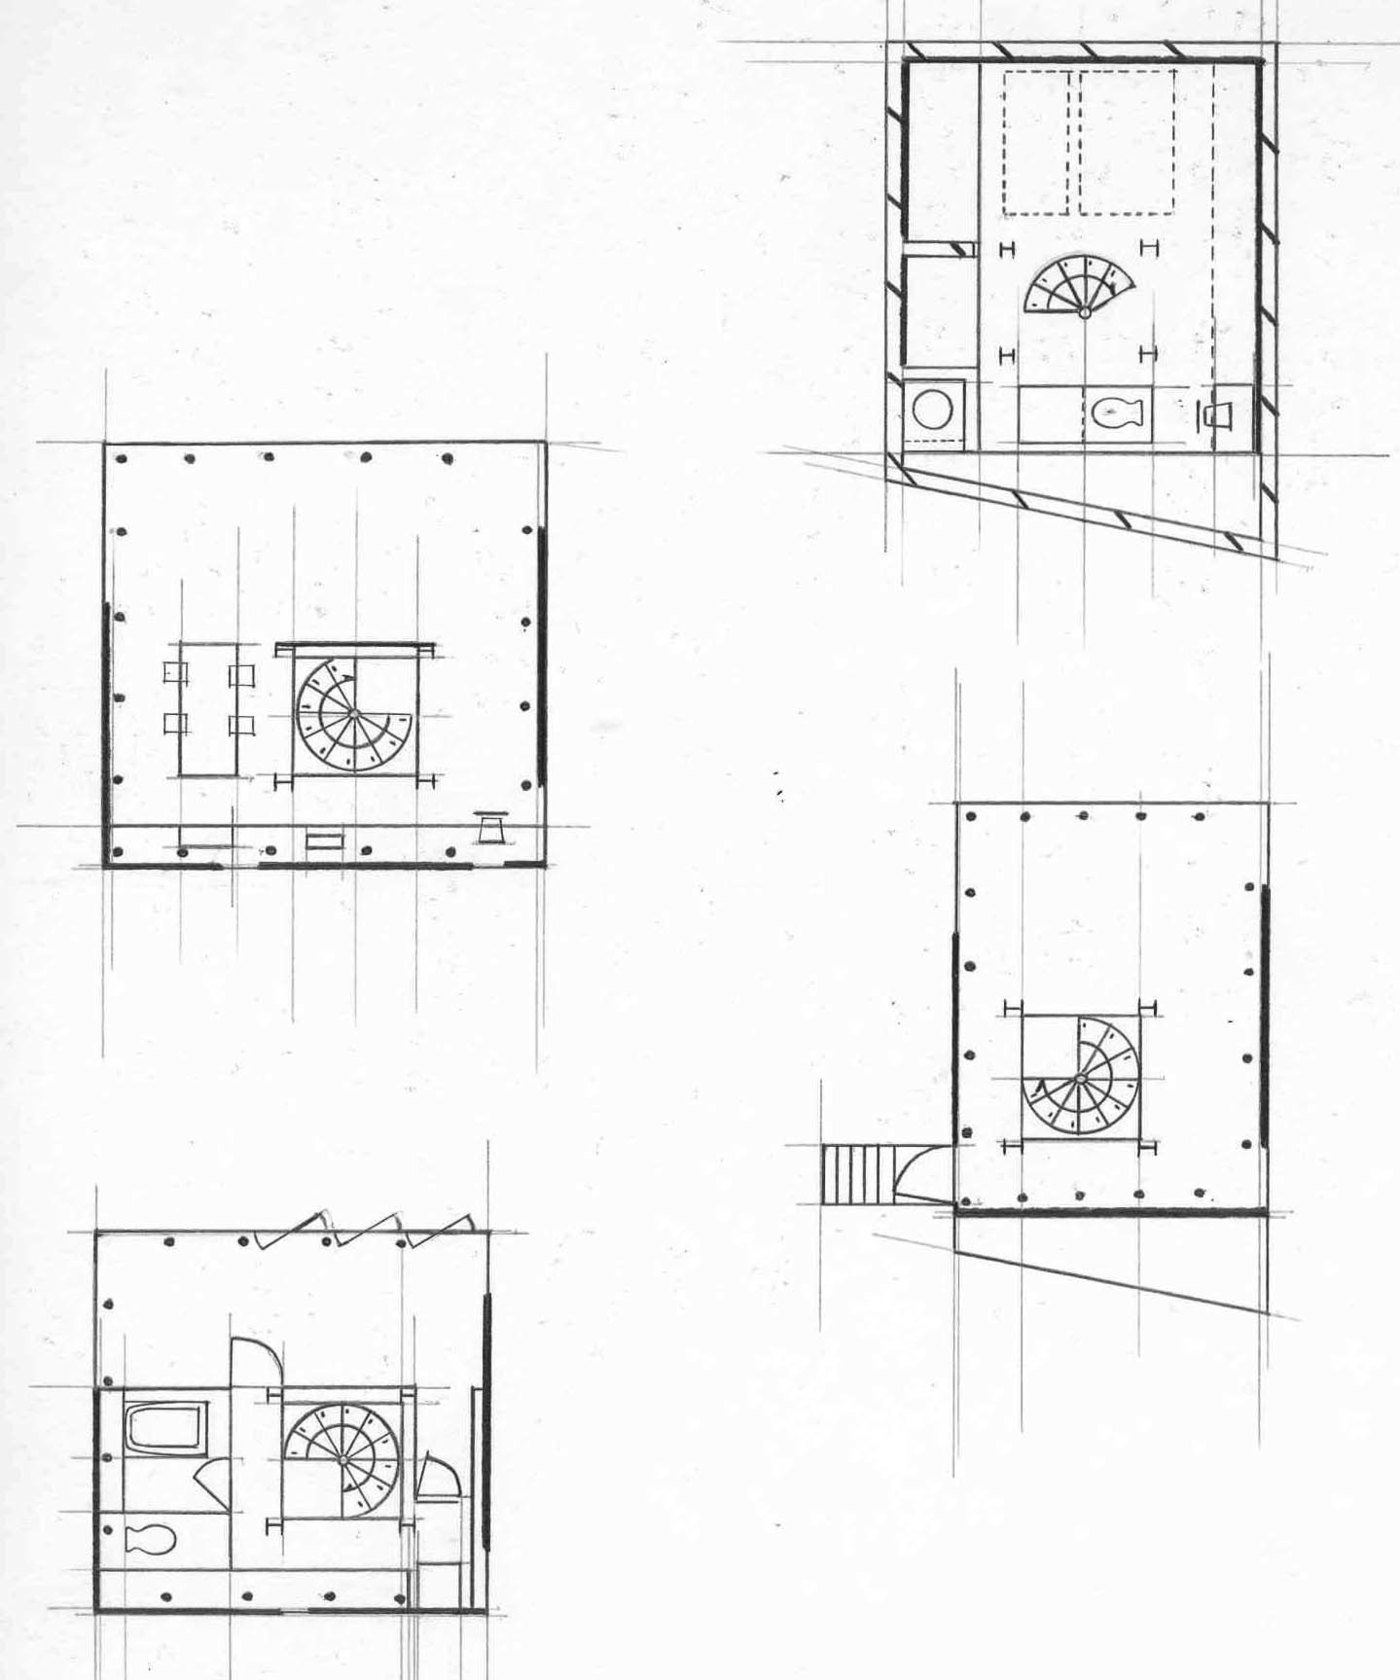 Picture of: Year One Recreating Villa Savoye Small House By Andre Kumar Alexander At Coroflot Com